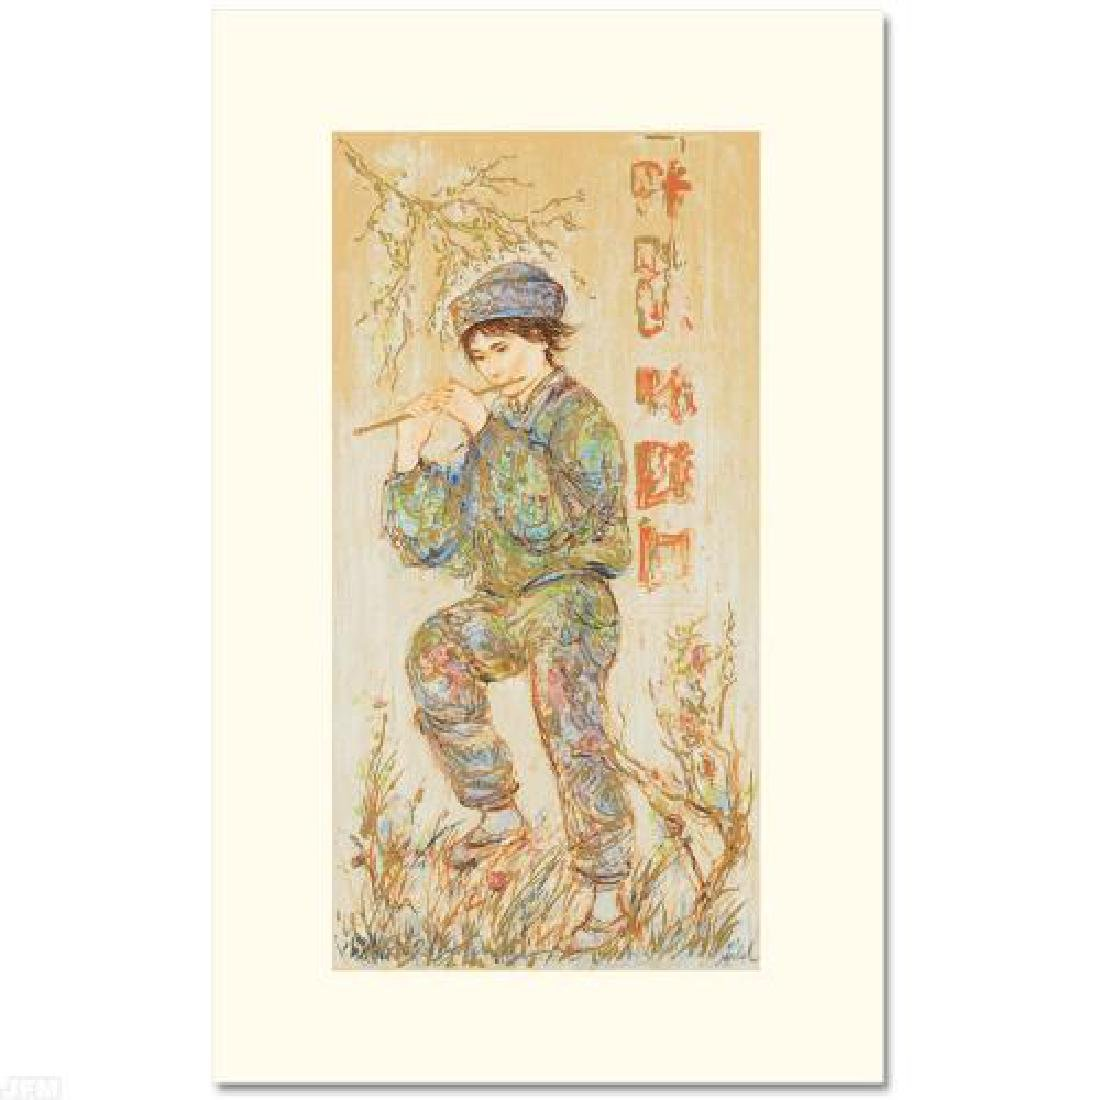 Puck LIMITED EDITION Serigraph by Edna Hibel